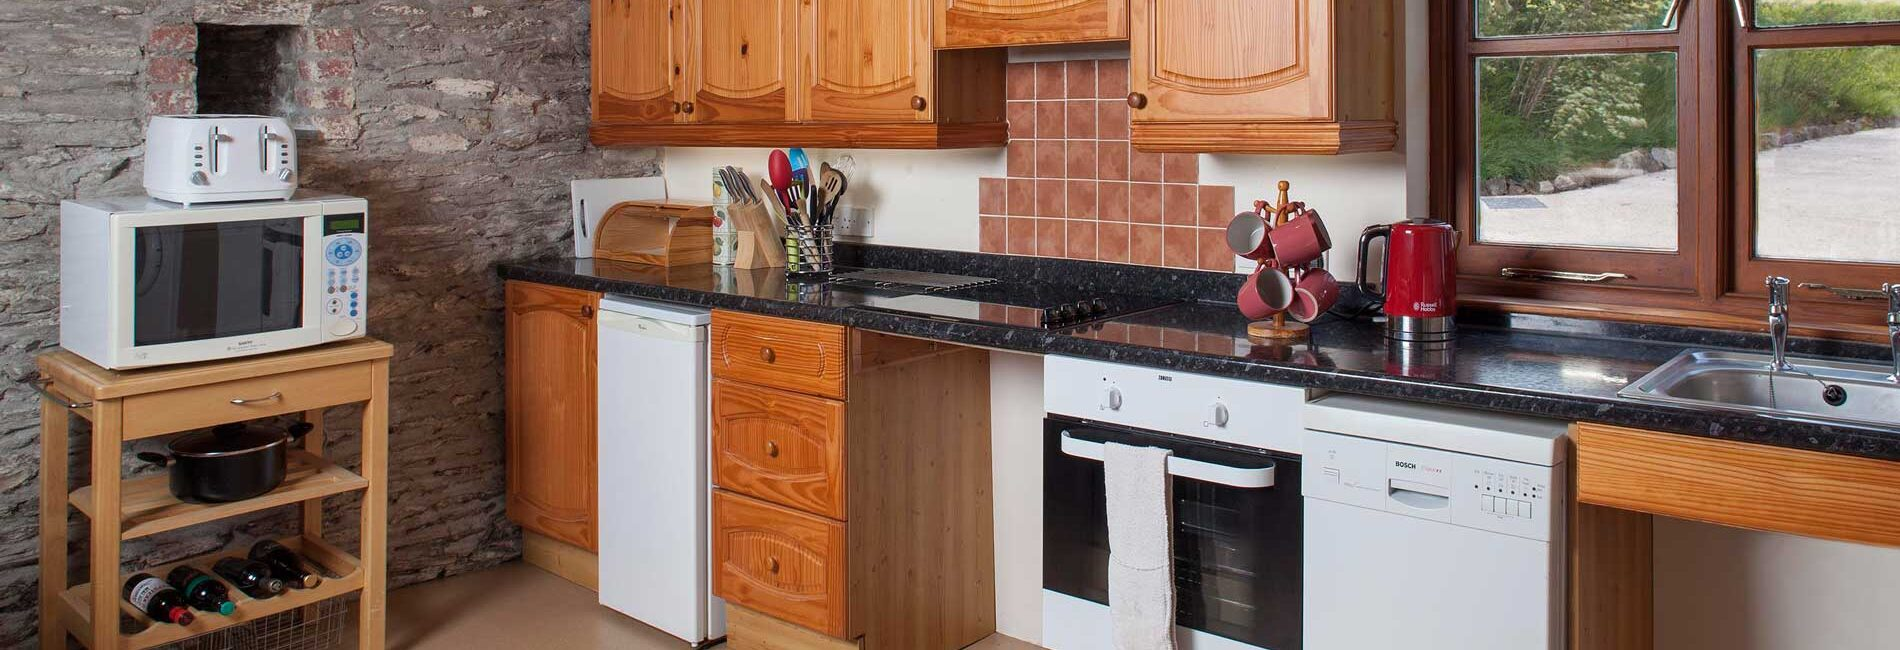 Buzzard Watch Kitchen showing clear underspace for the hob and sink and a worktop level combination microwave. The hob can be lowered for easier access.